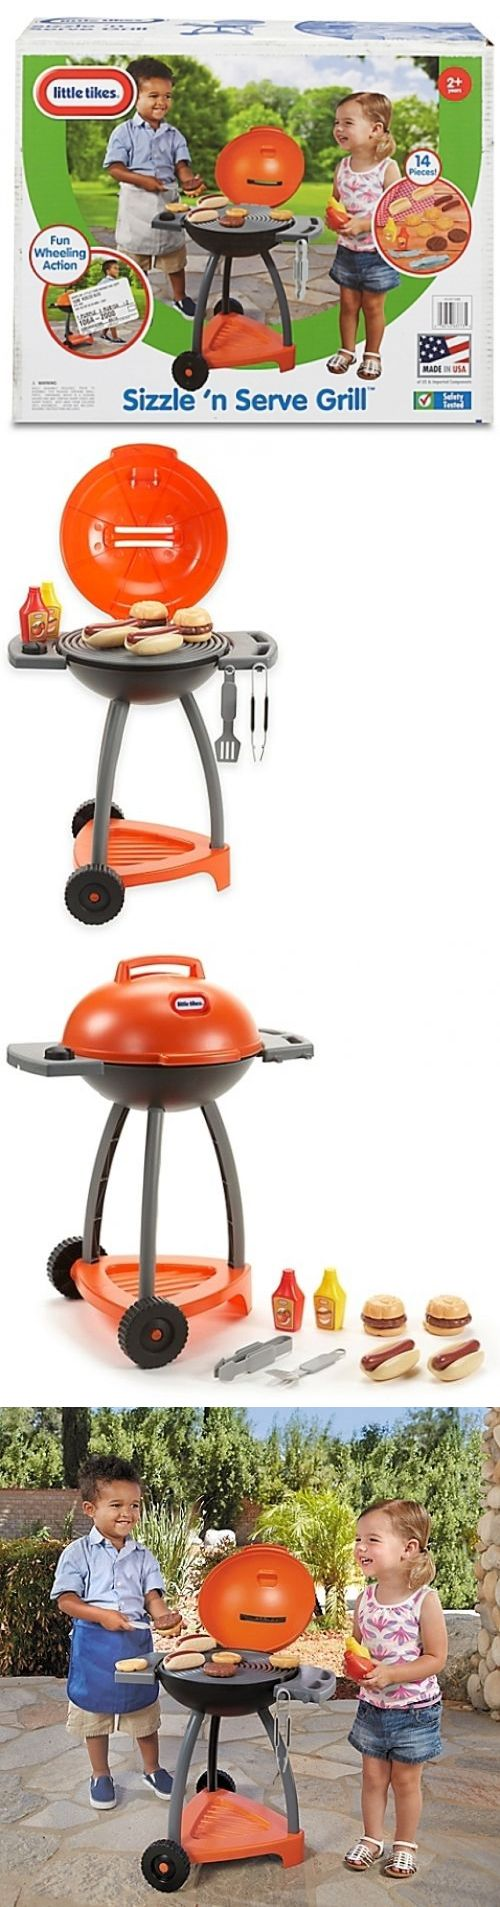 Child Size 2574: Little Tikes Sizzle N Serve Grill Indoor Outdoor Barbecue Play Food Set -> BUY IT NOW ONLY: $39.91 on eBay!